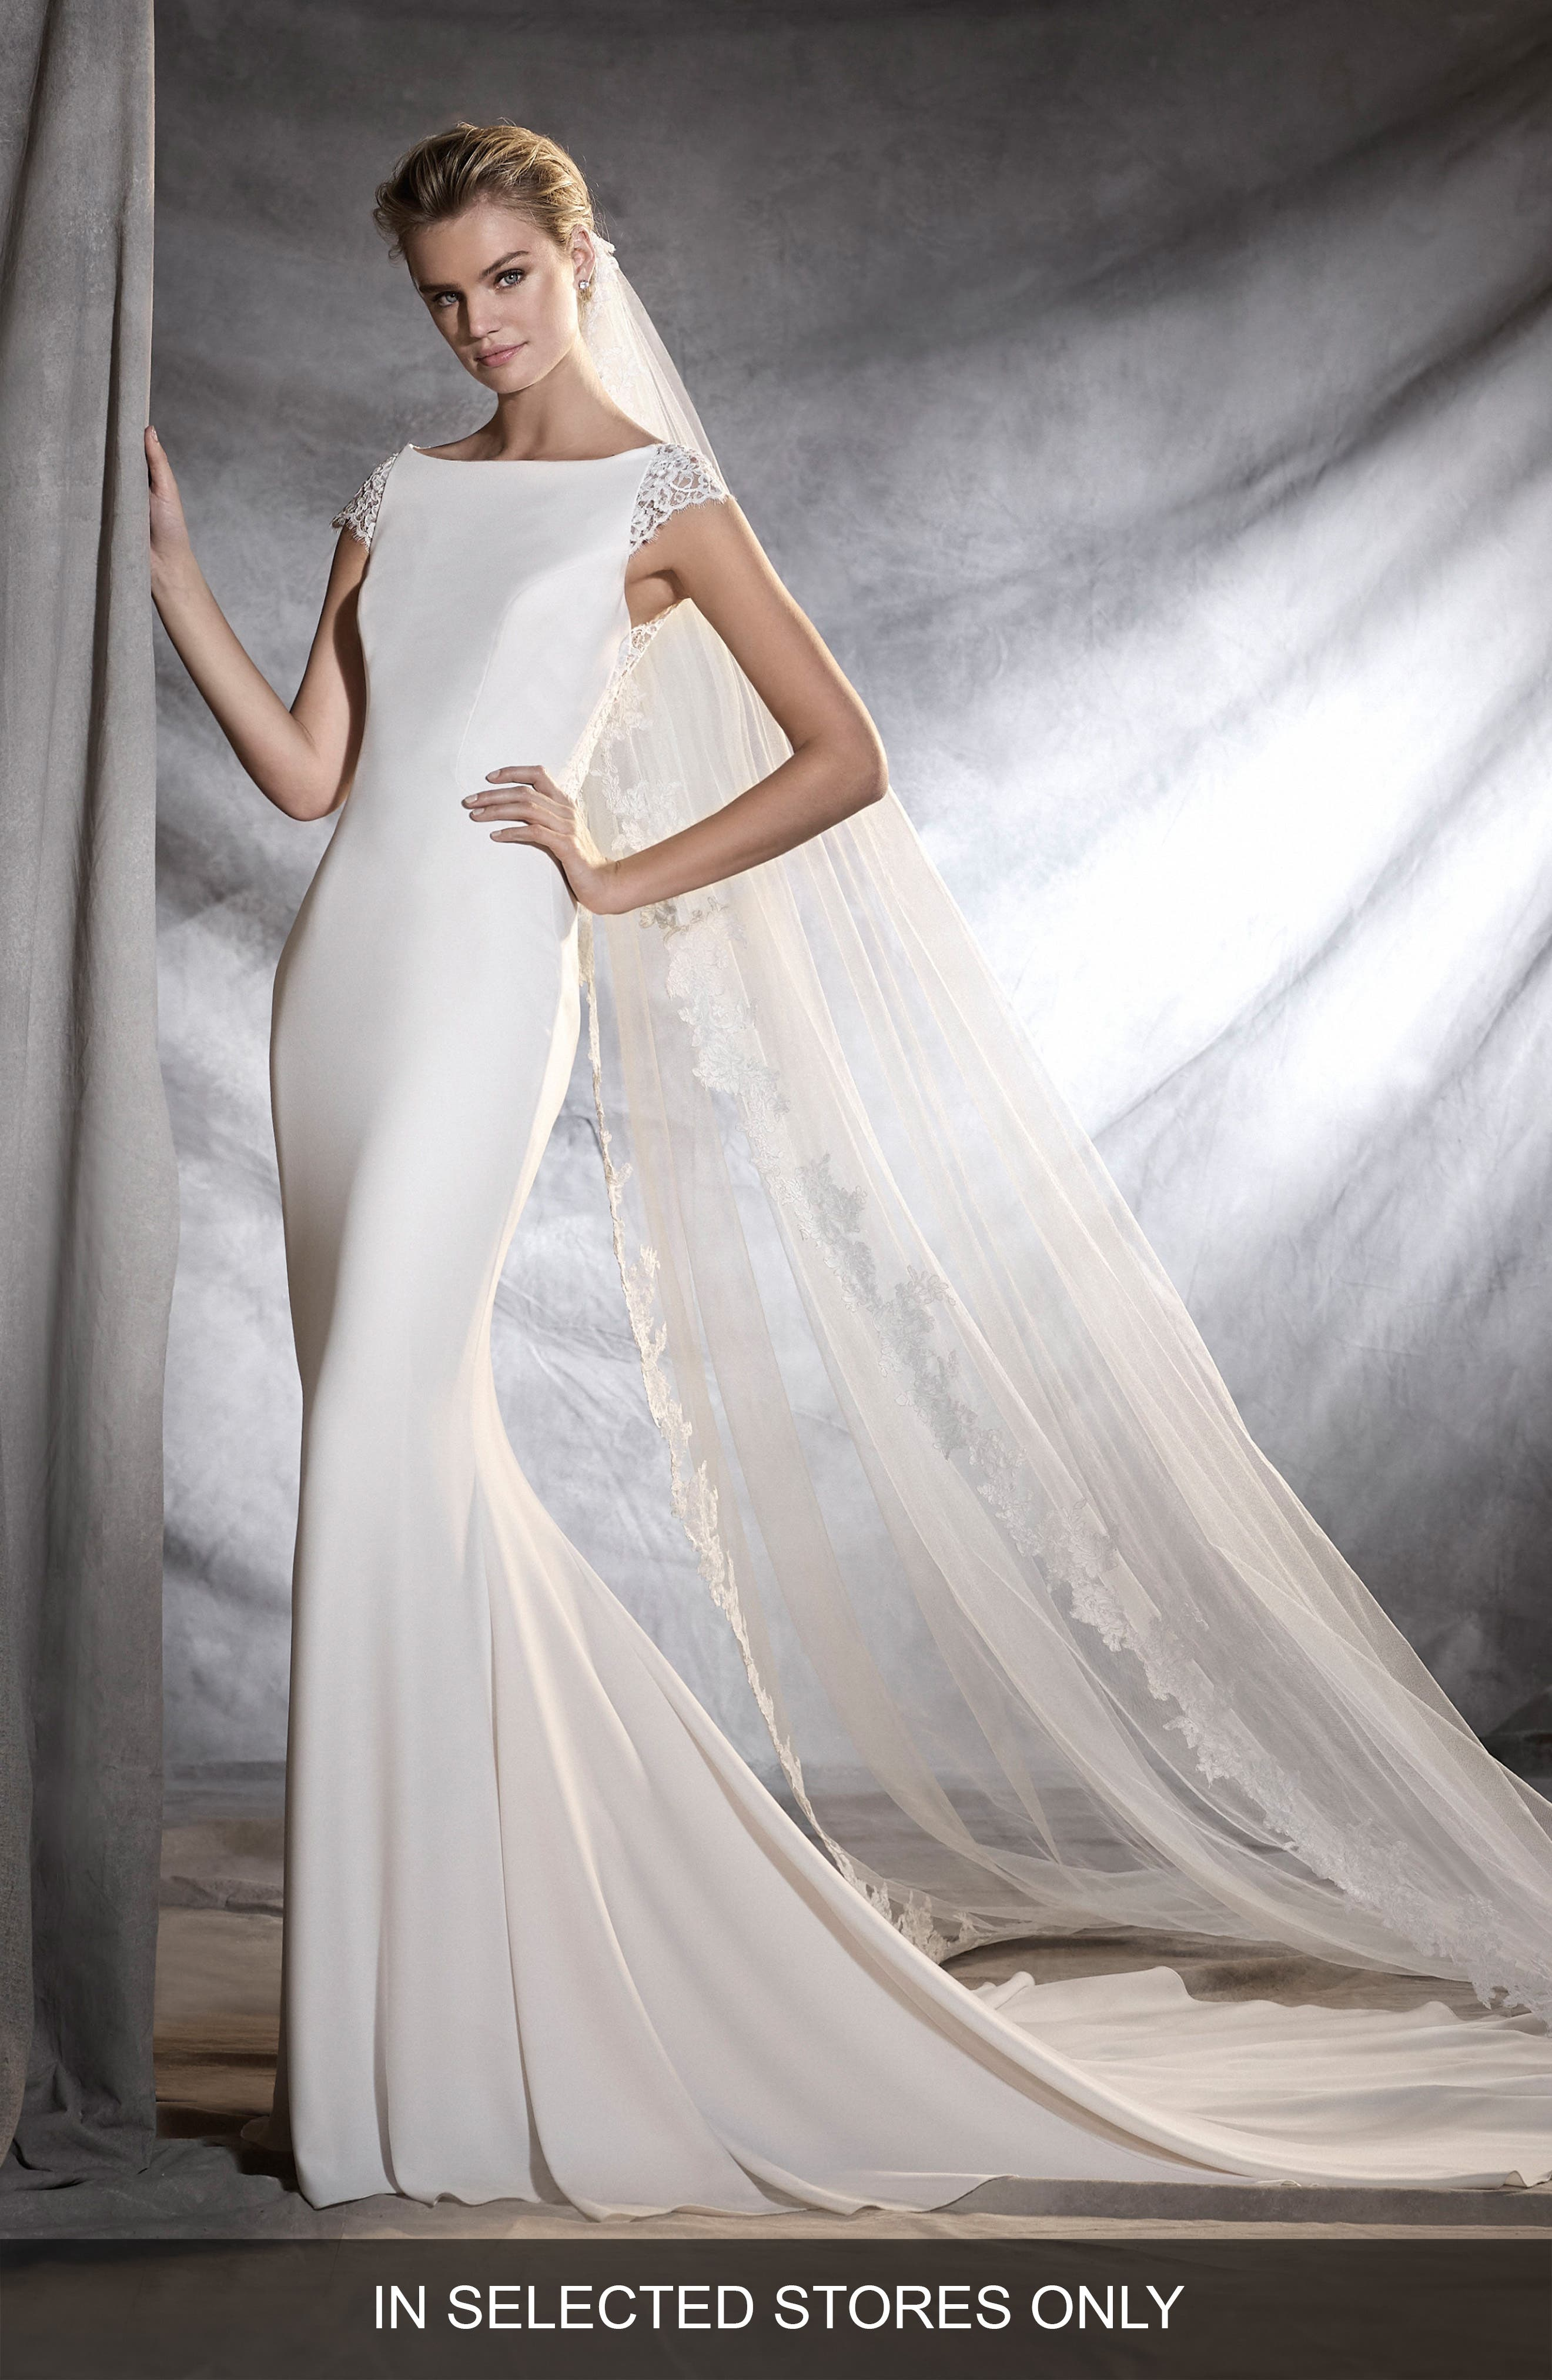 Alternate Image 1 Selected - Pronovias Olbia Cap Sleeve Lace Back Crepe Mermaid Gown